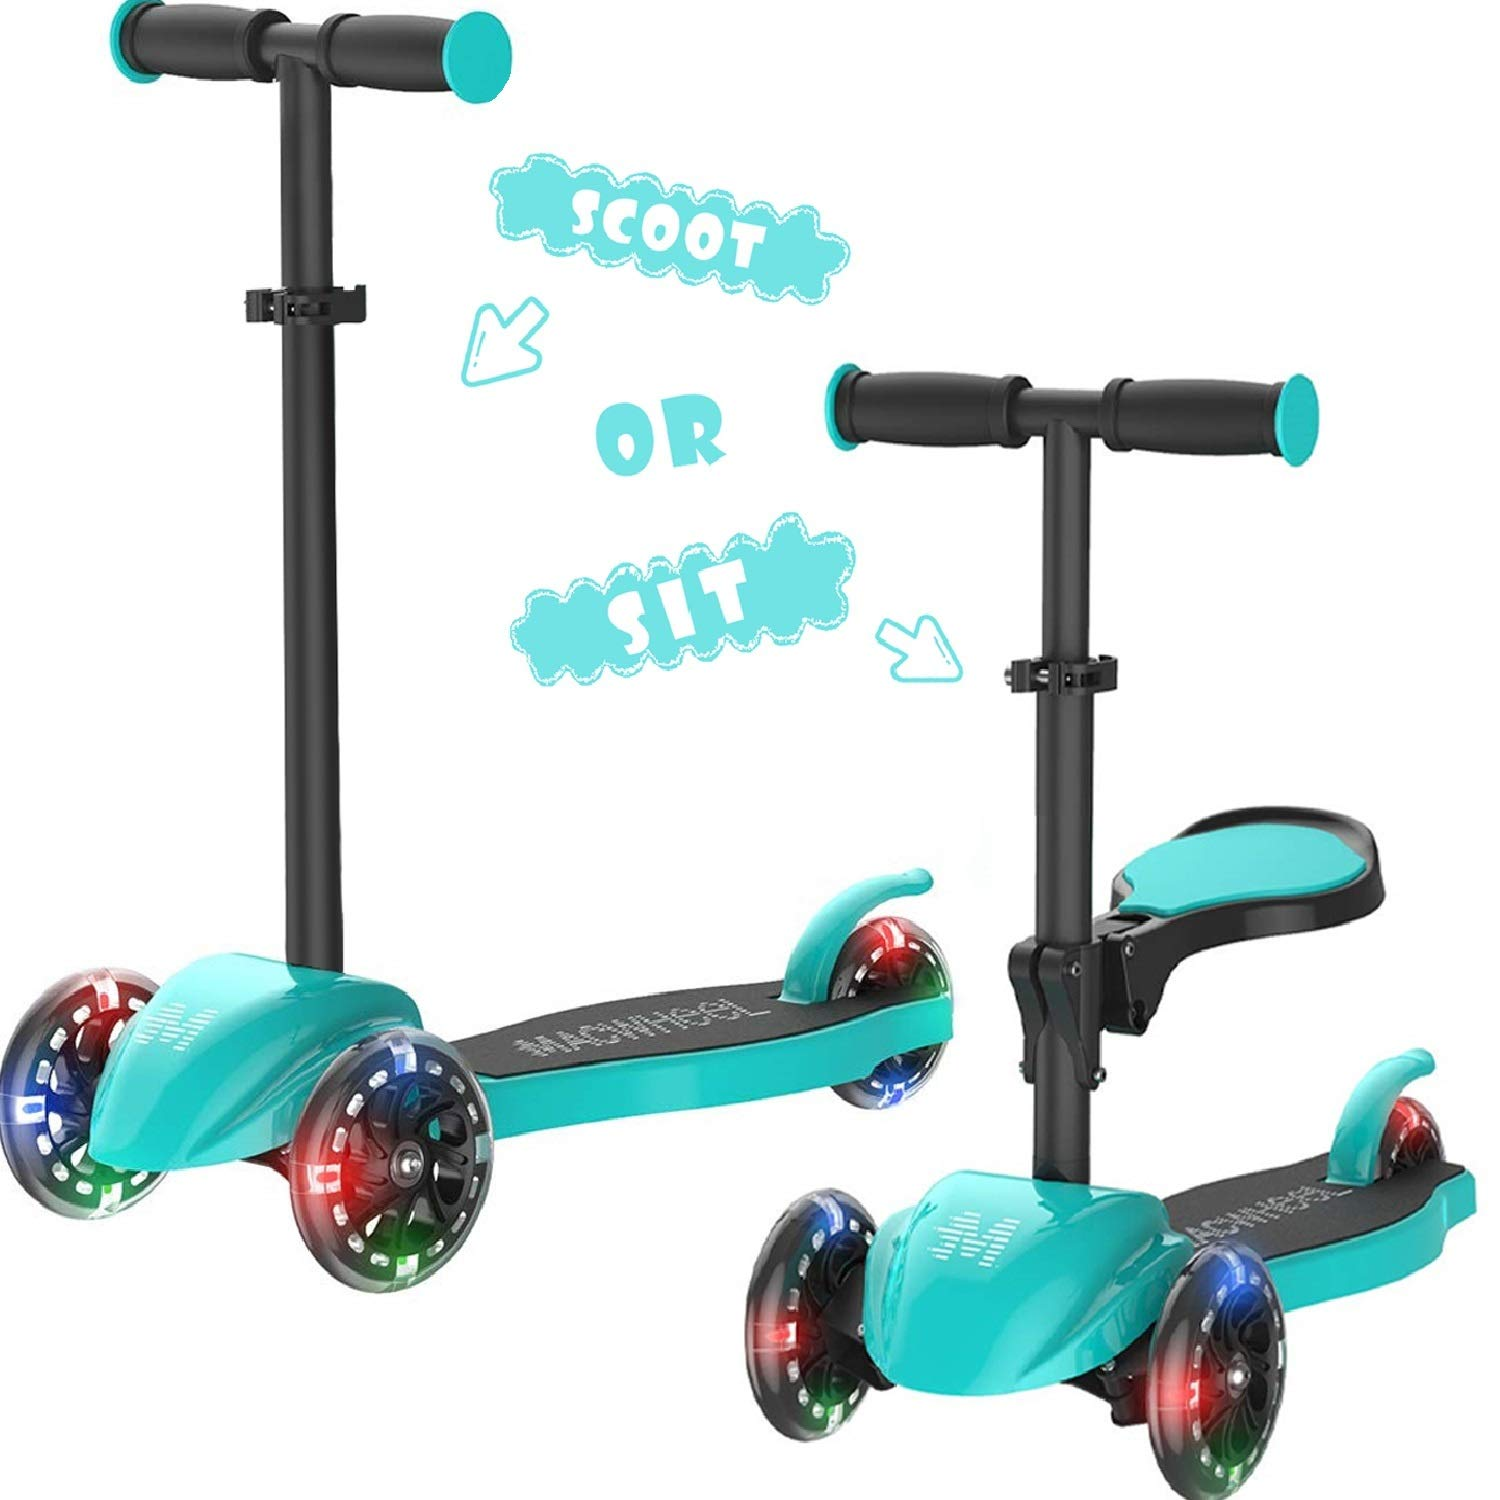 Macwheel Patinete de 3 Ruedas Scooter con Led Luces Manillar ...